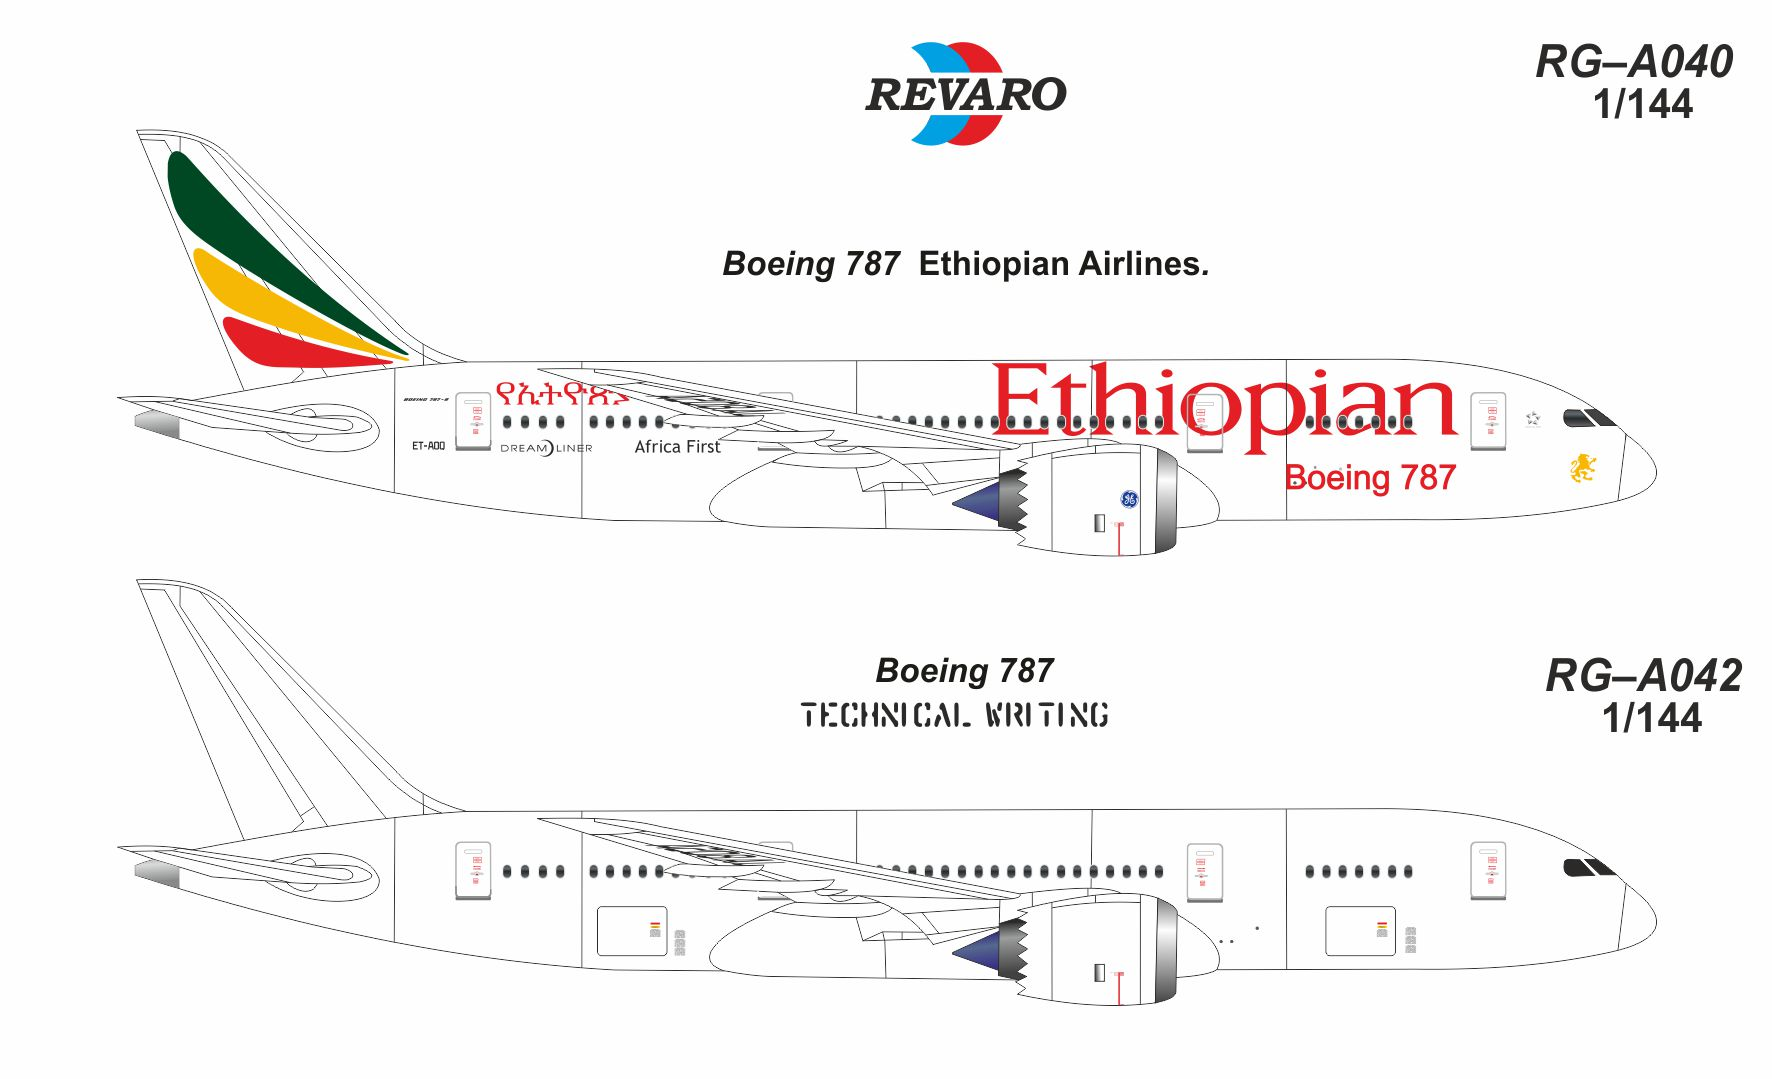 декали Boeing 787 1/144 revaro decal